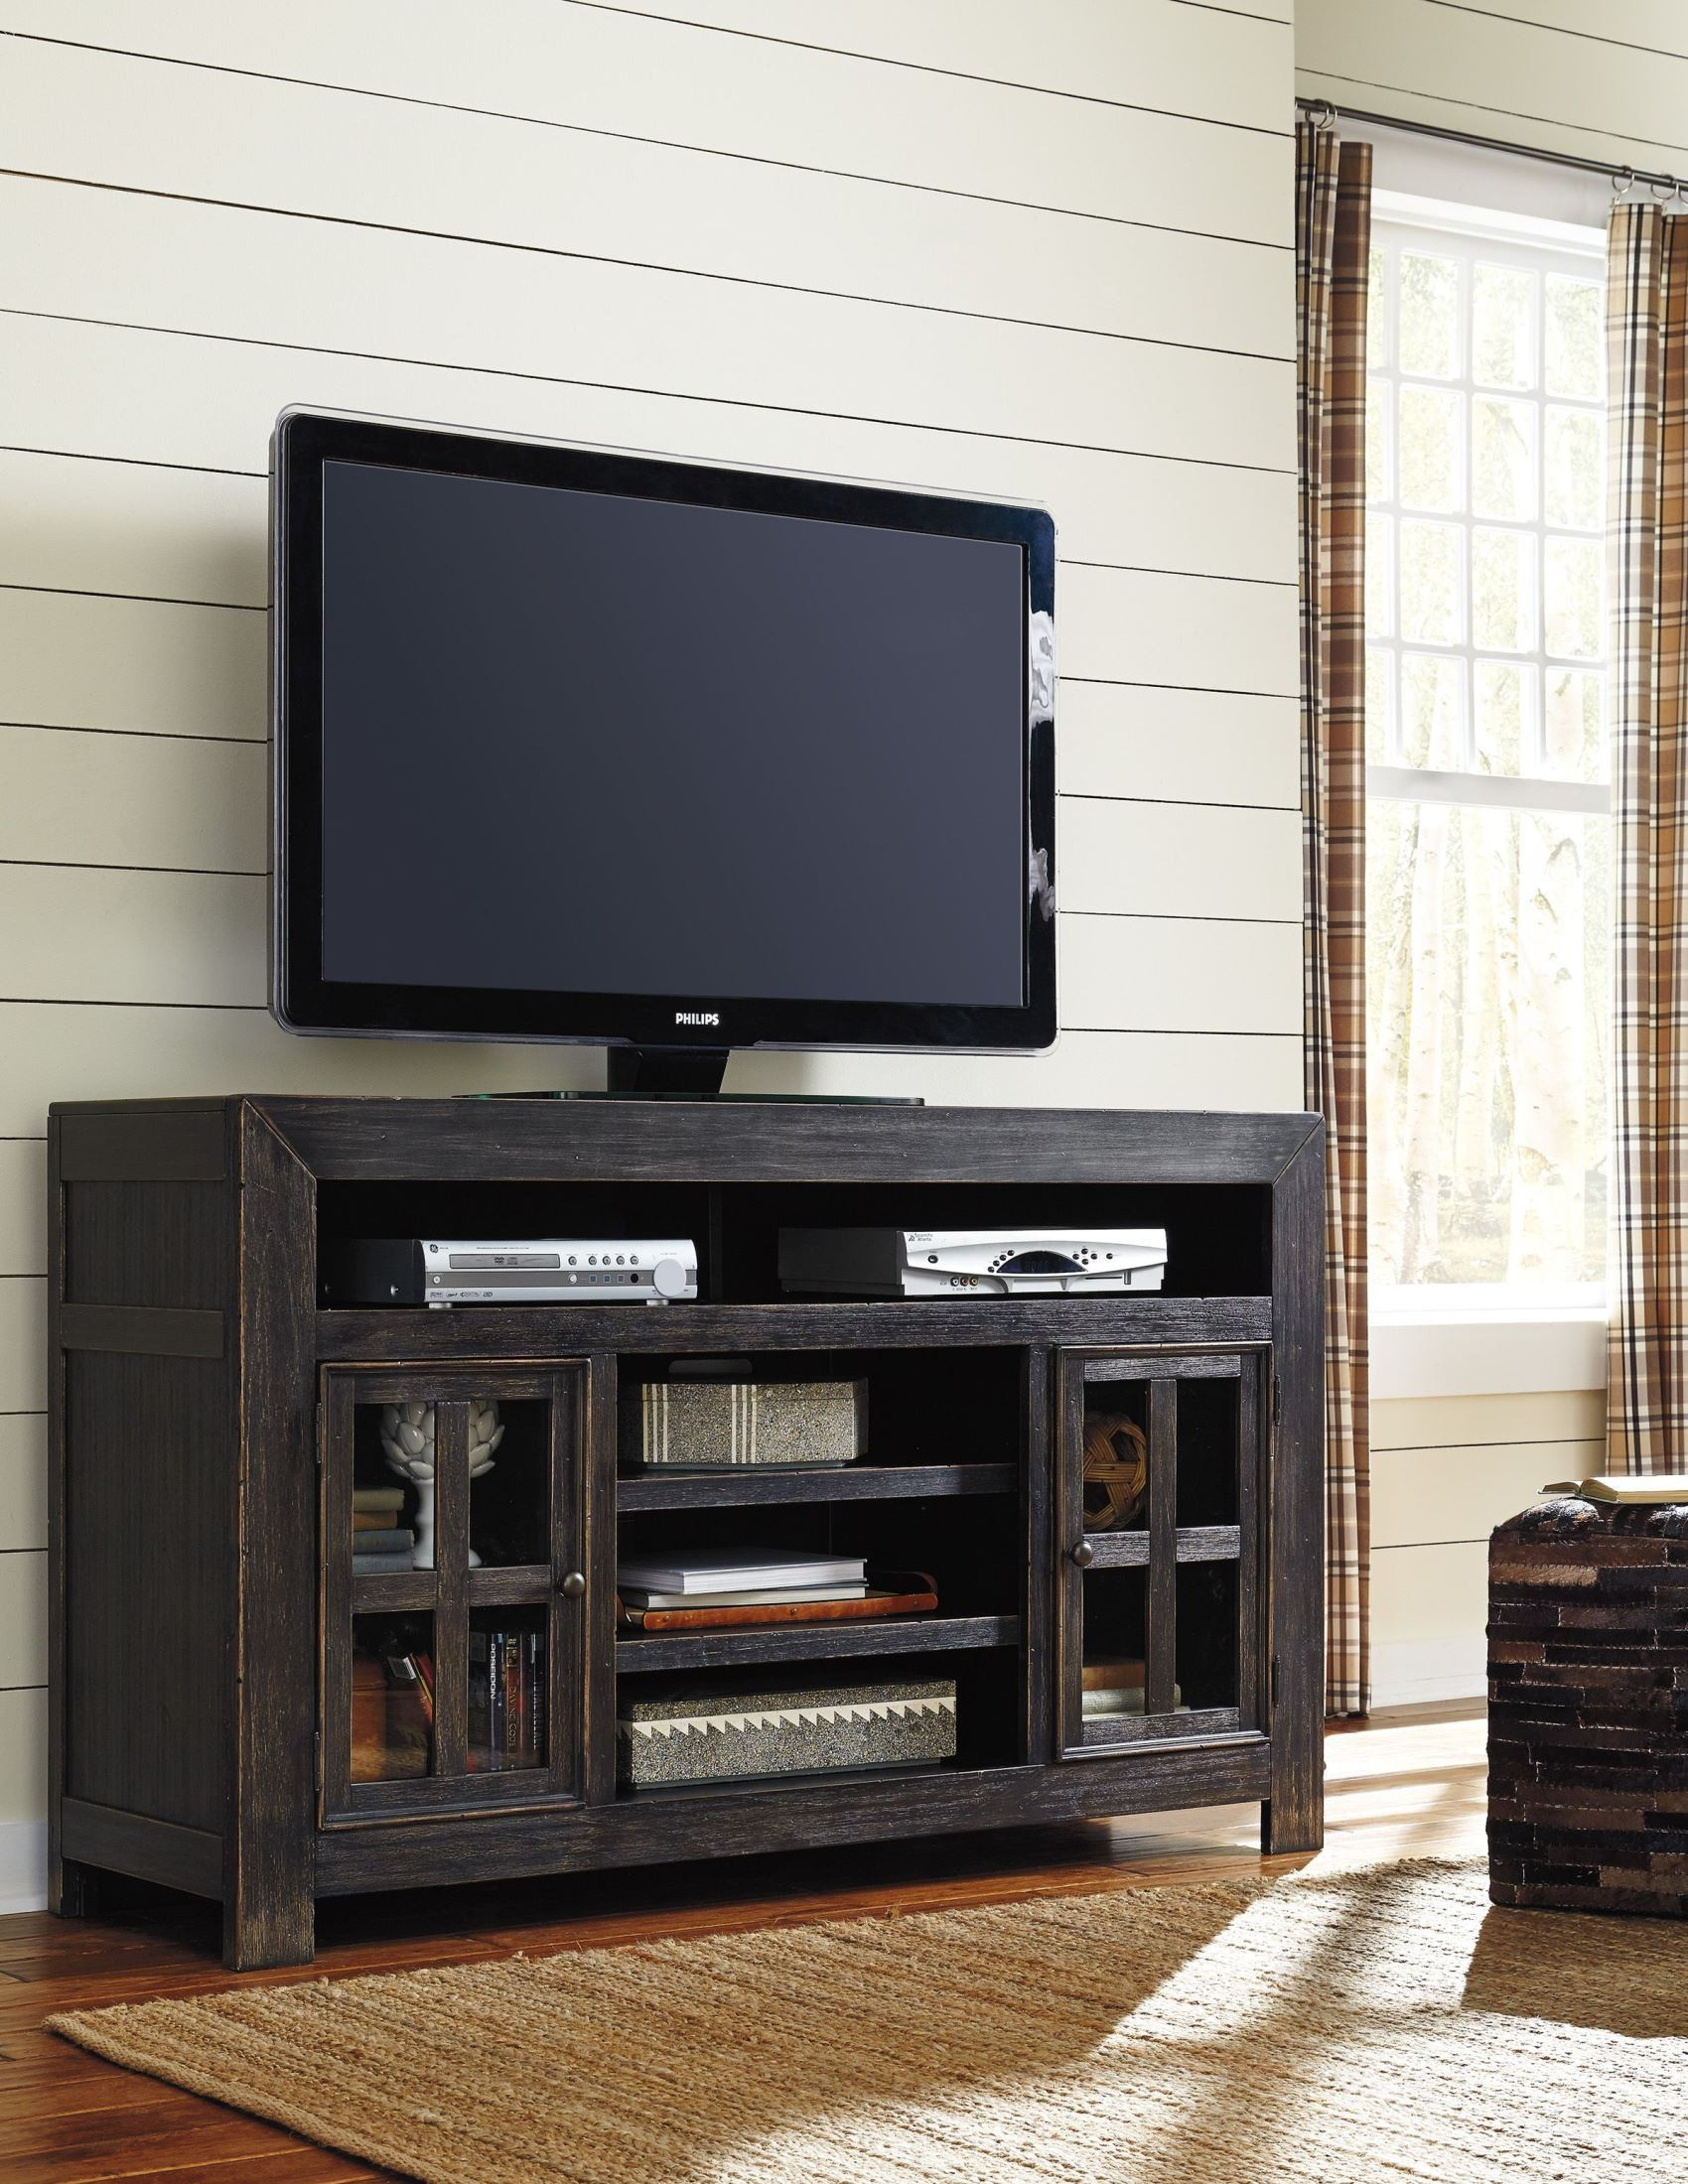 Gavelston Lg Tv Stand From Ashley W732 38 Coleman Furniture